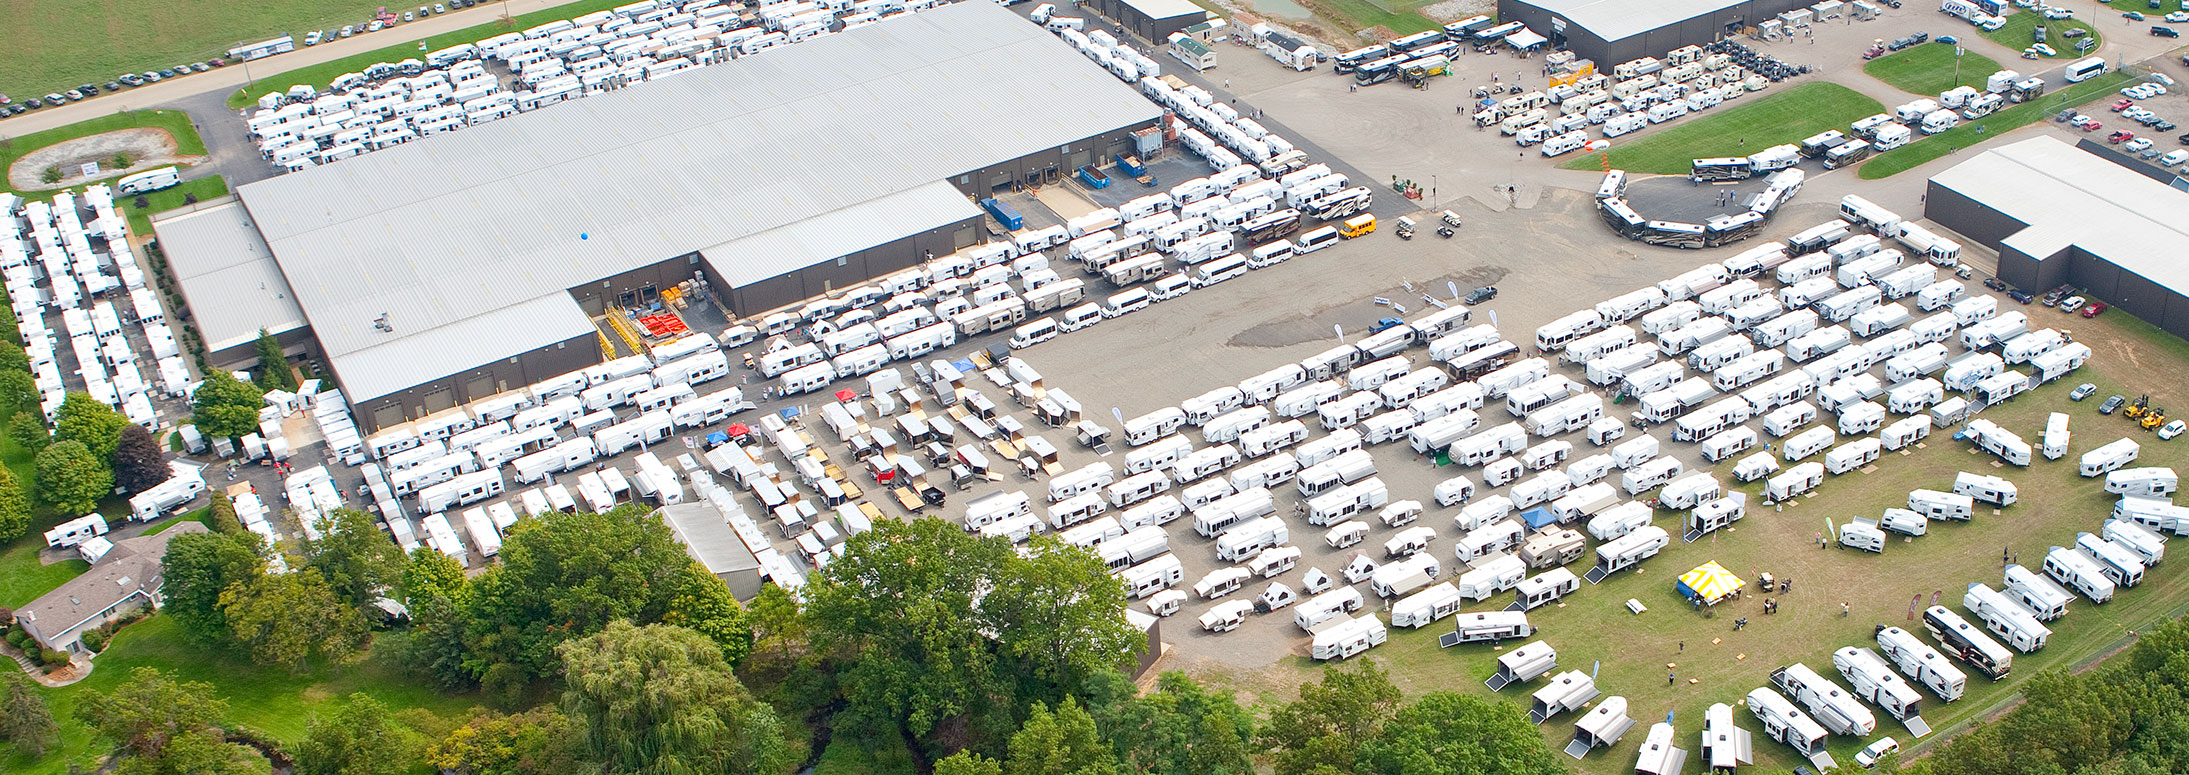 Aerial view of large recreational vehicle expo